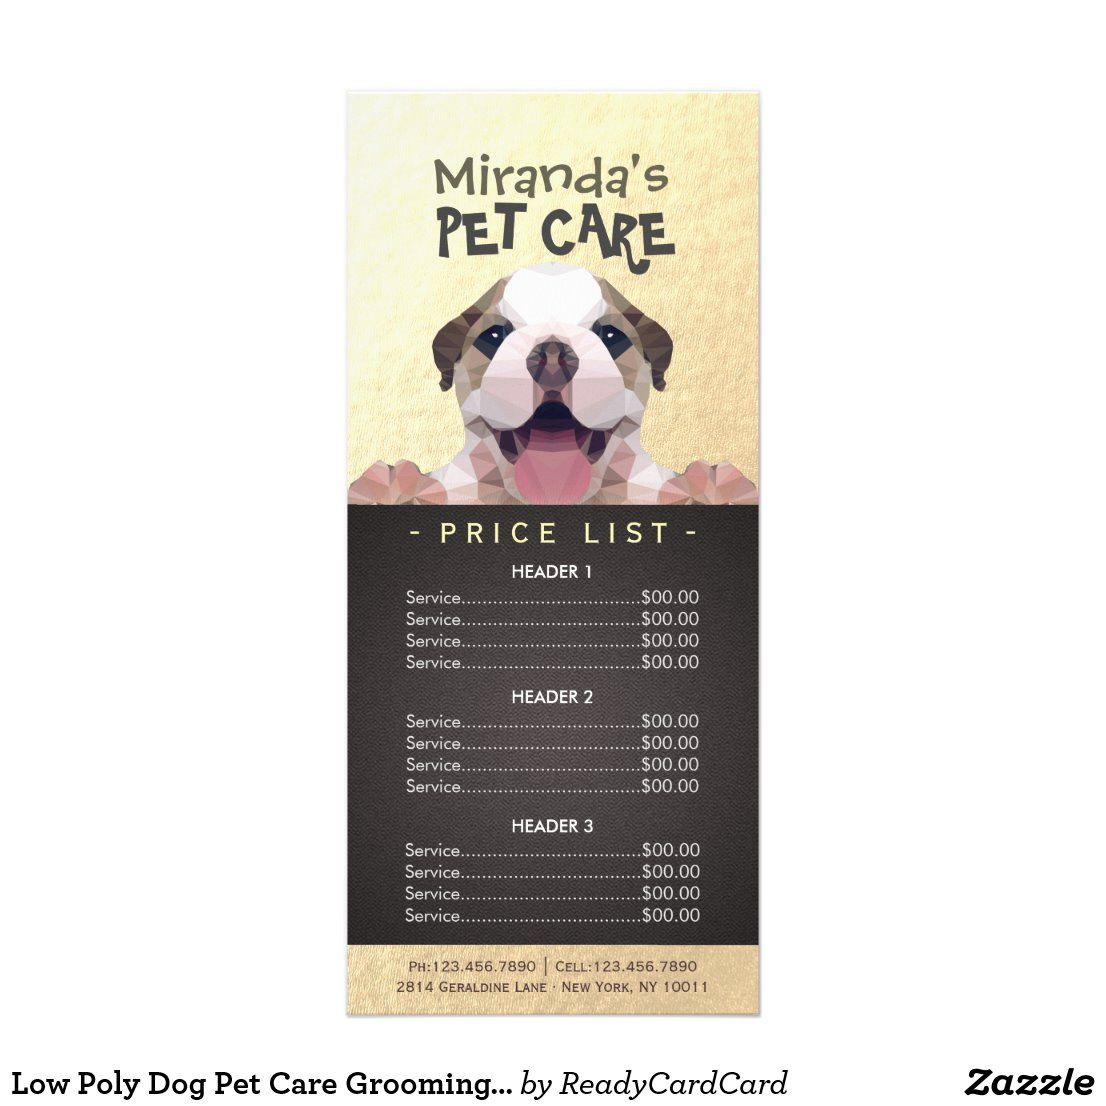 Low Poly Dog Pet Care Grooming Bathing Price List Rack